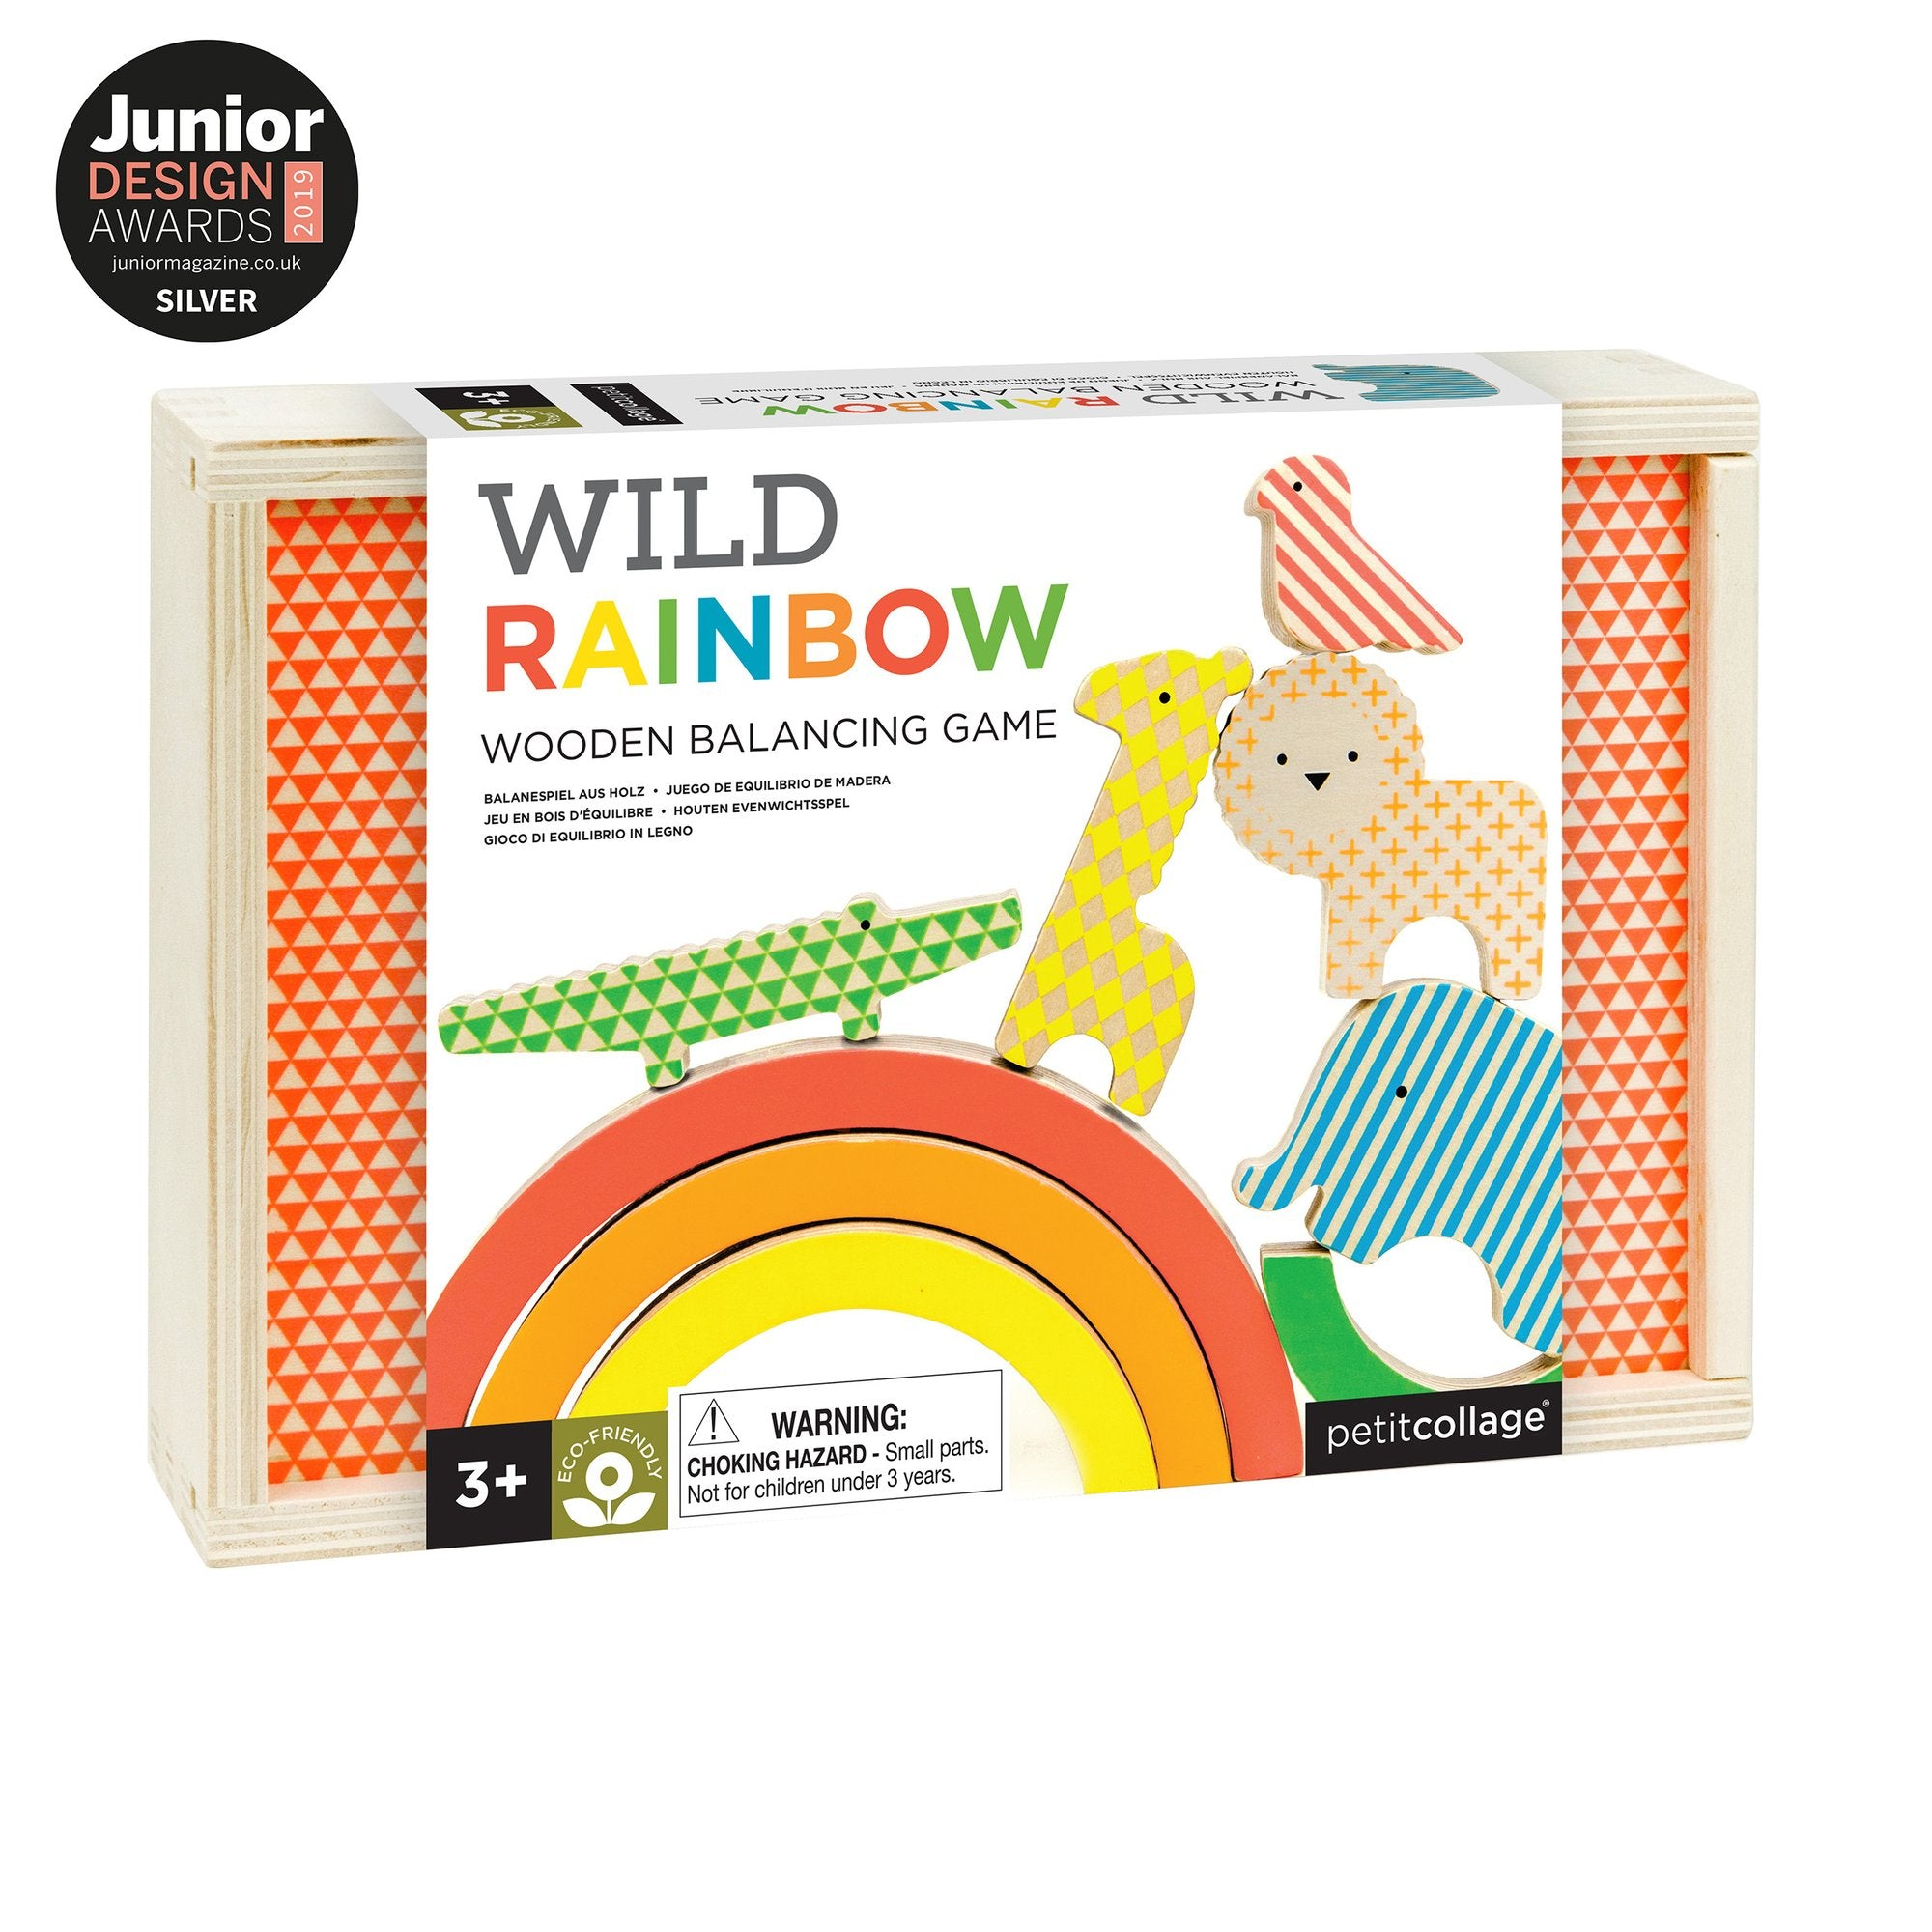 Petite Collage Wild Rainbow Wooden Balancing Game